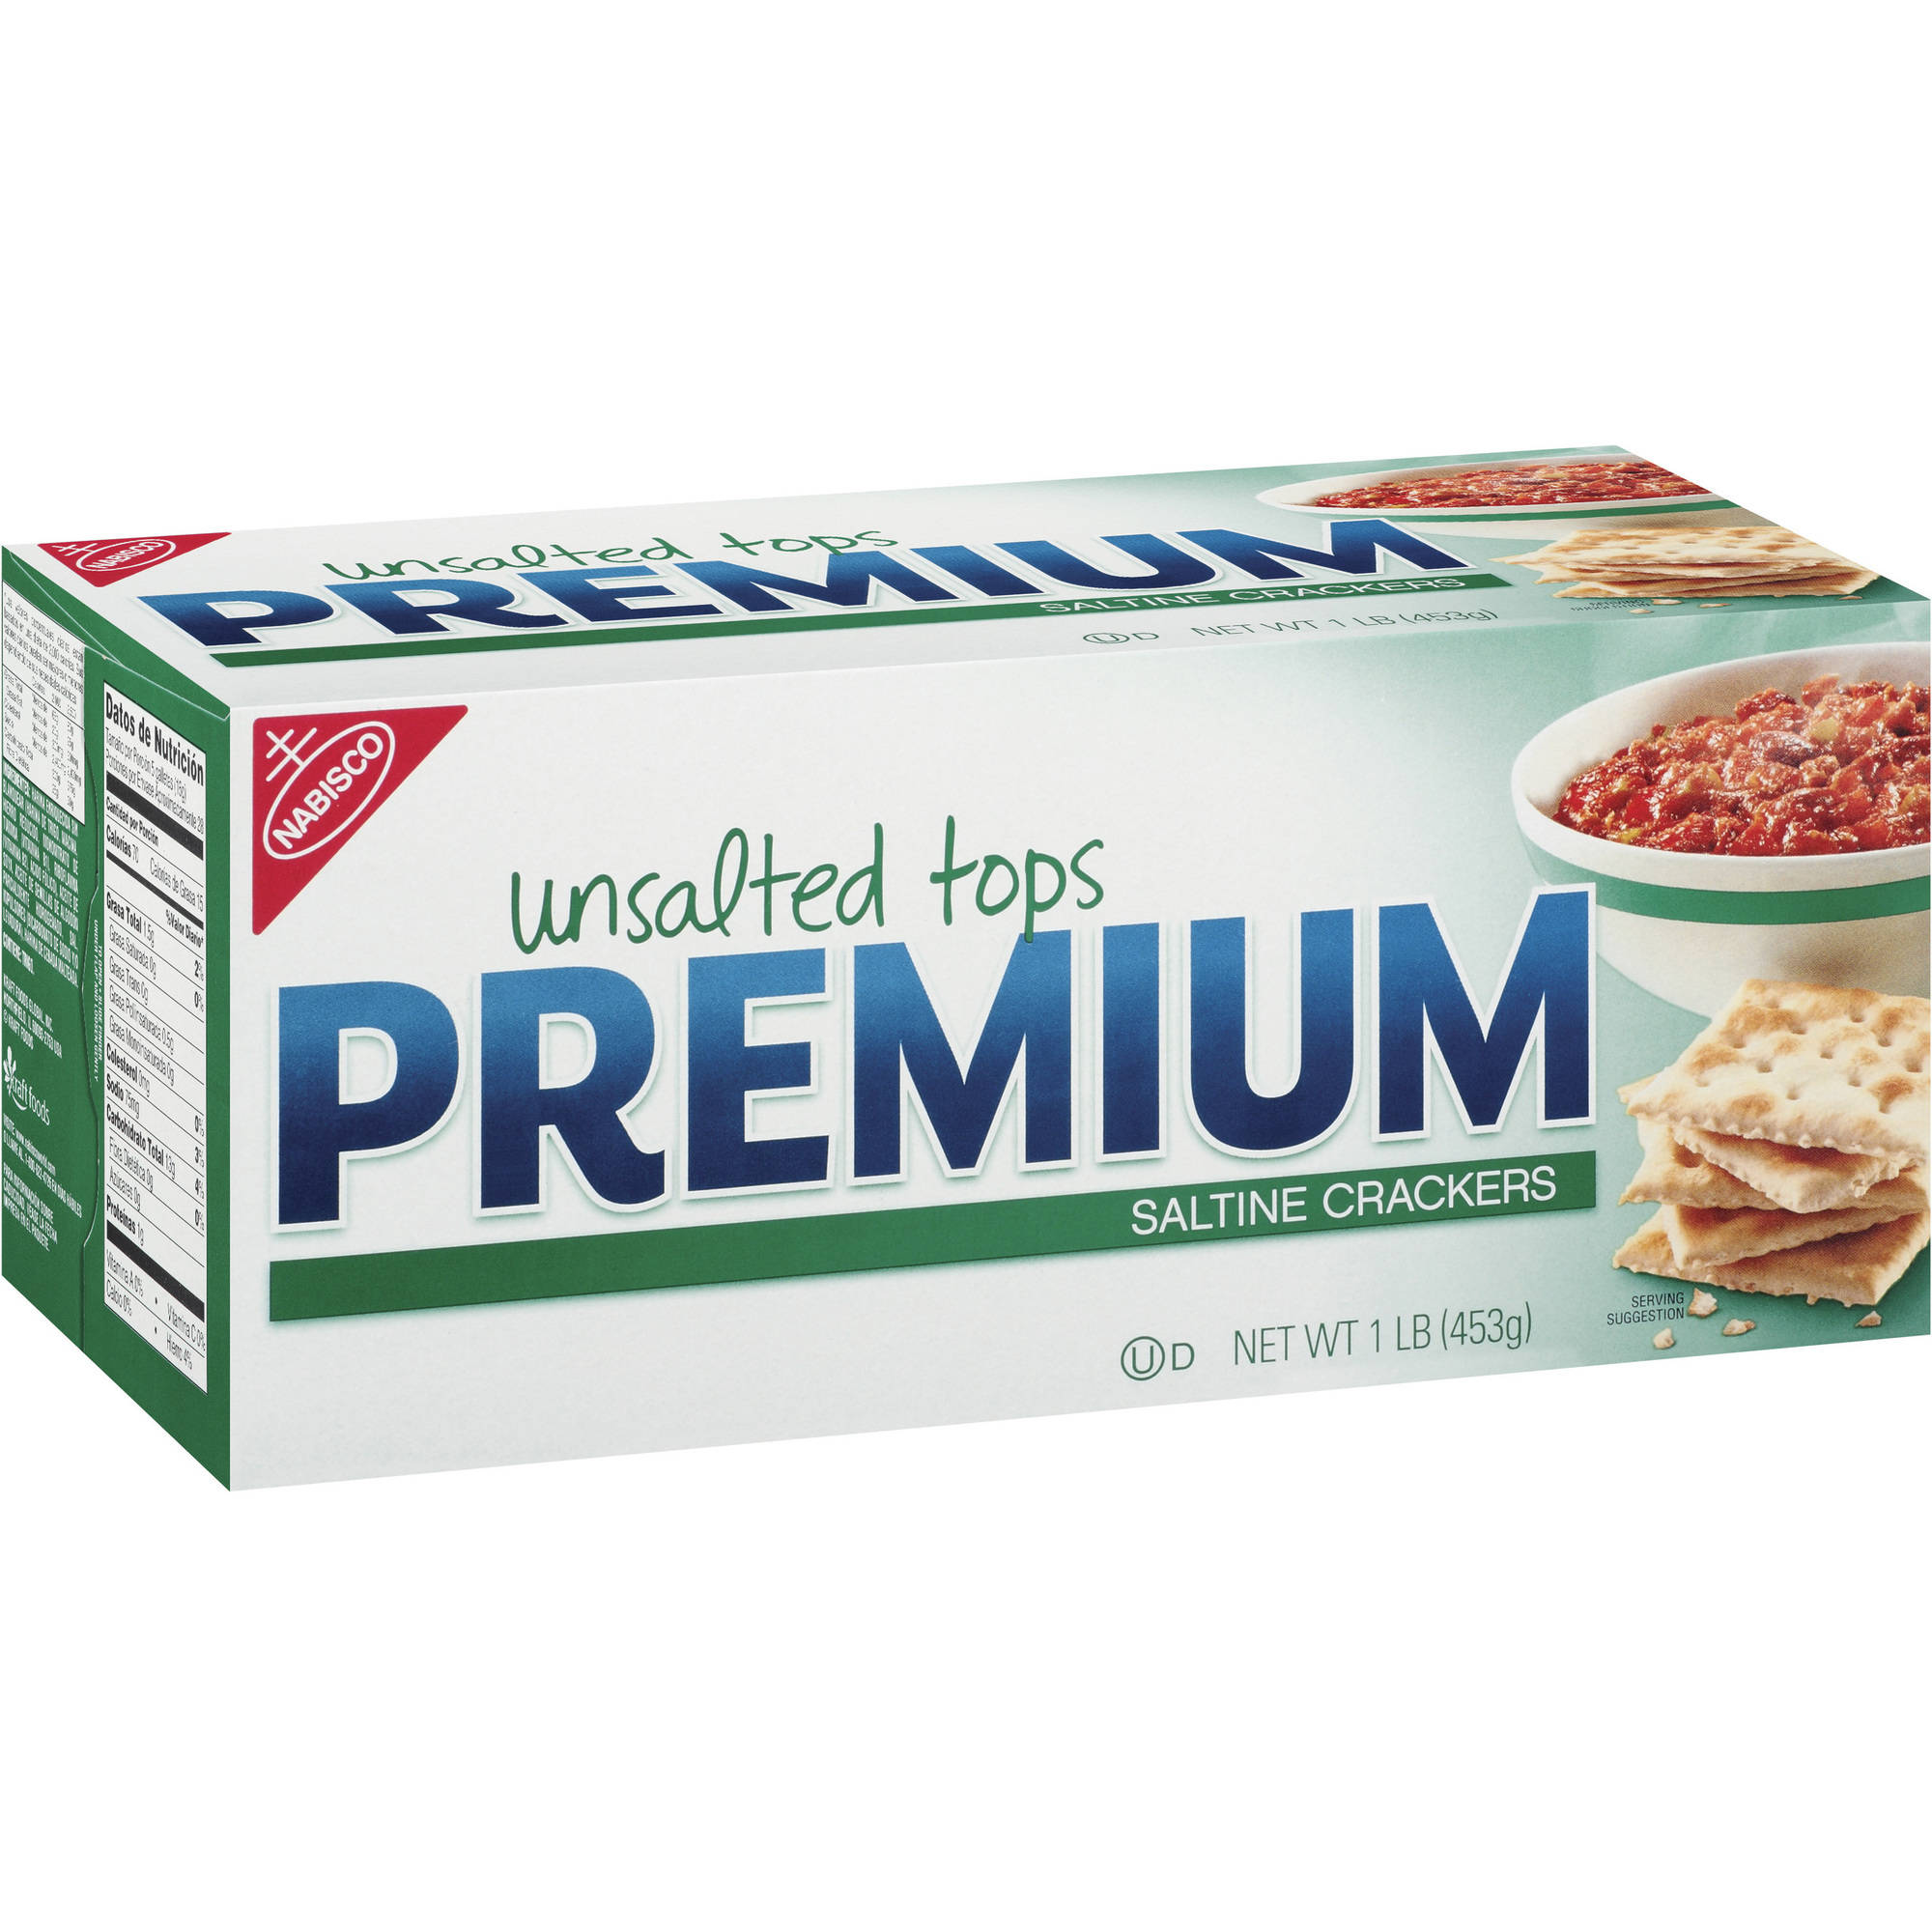 Nabisco Premium Unsalted Tops Saltine Crackers, 16 oz